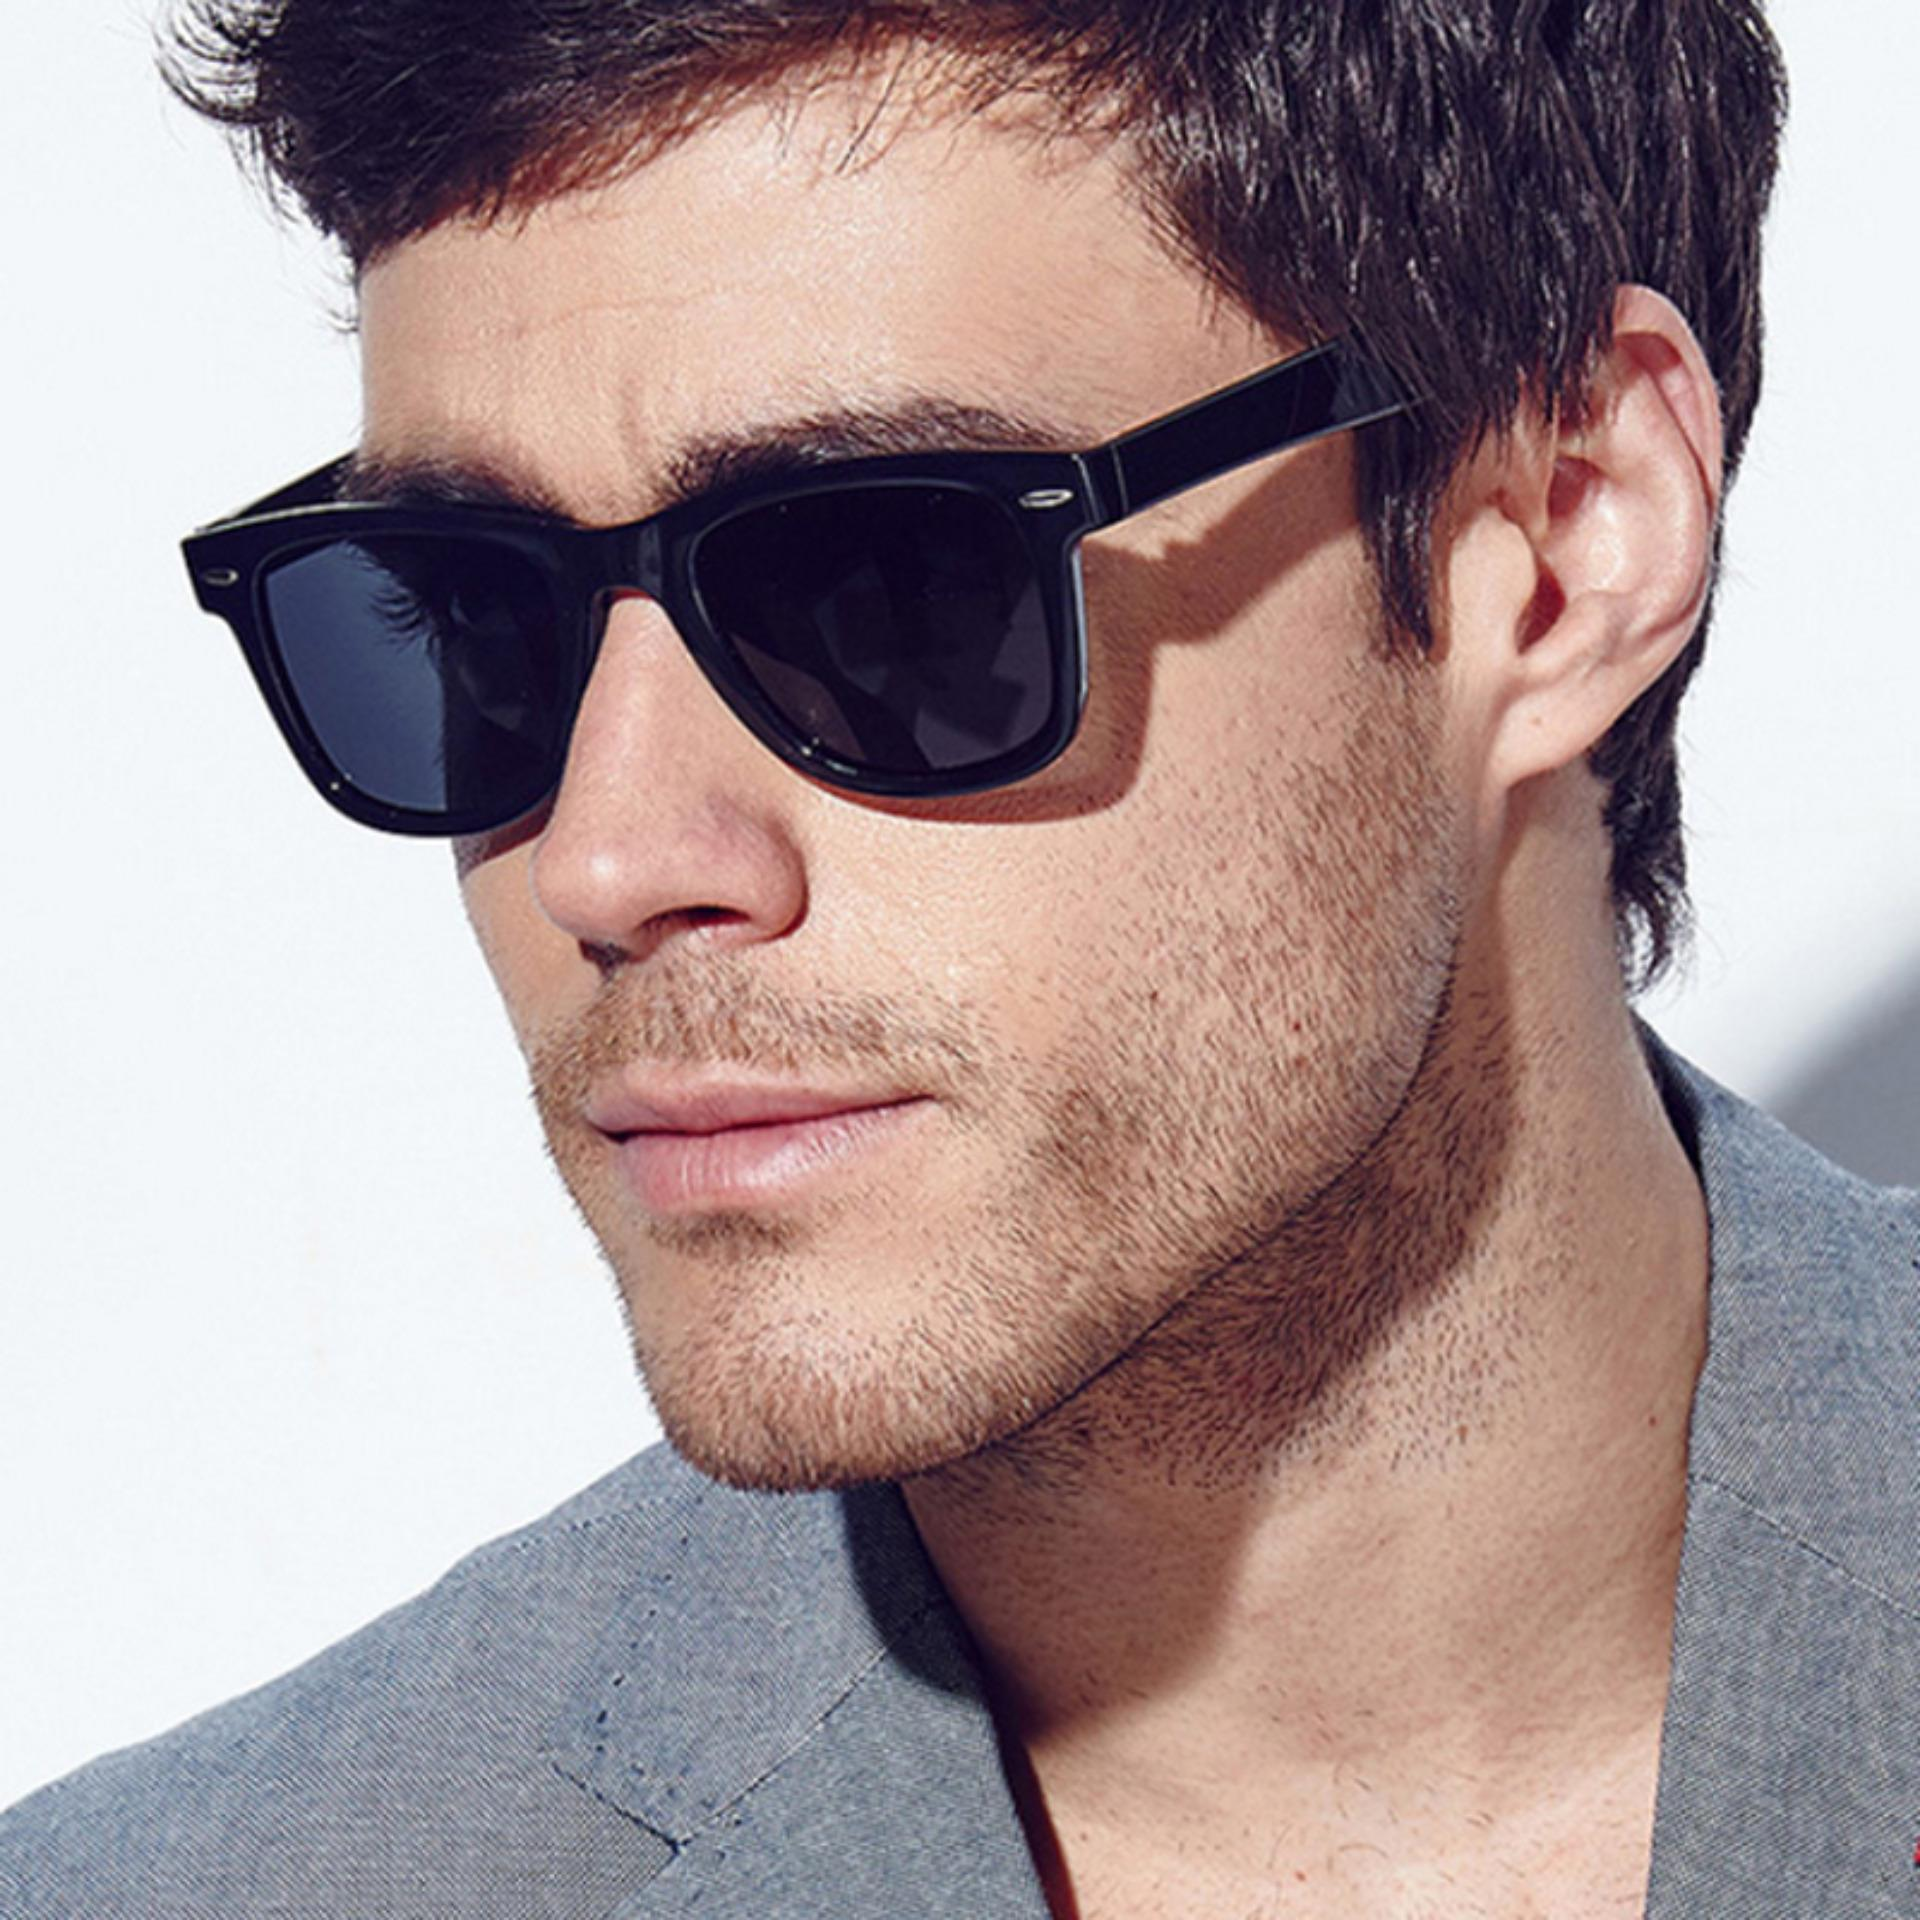 Retro Aviator Sunglasses Eyewear Mirrored Lens -Kacamata Pria - Hitam - Ras 0100 Blk By Timely Indonesia.